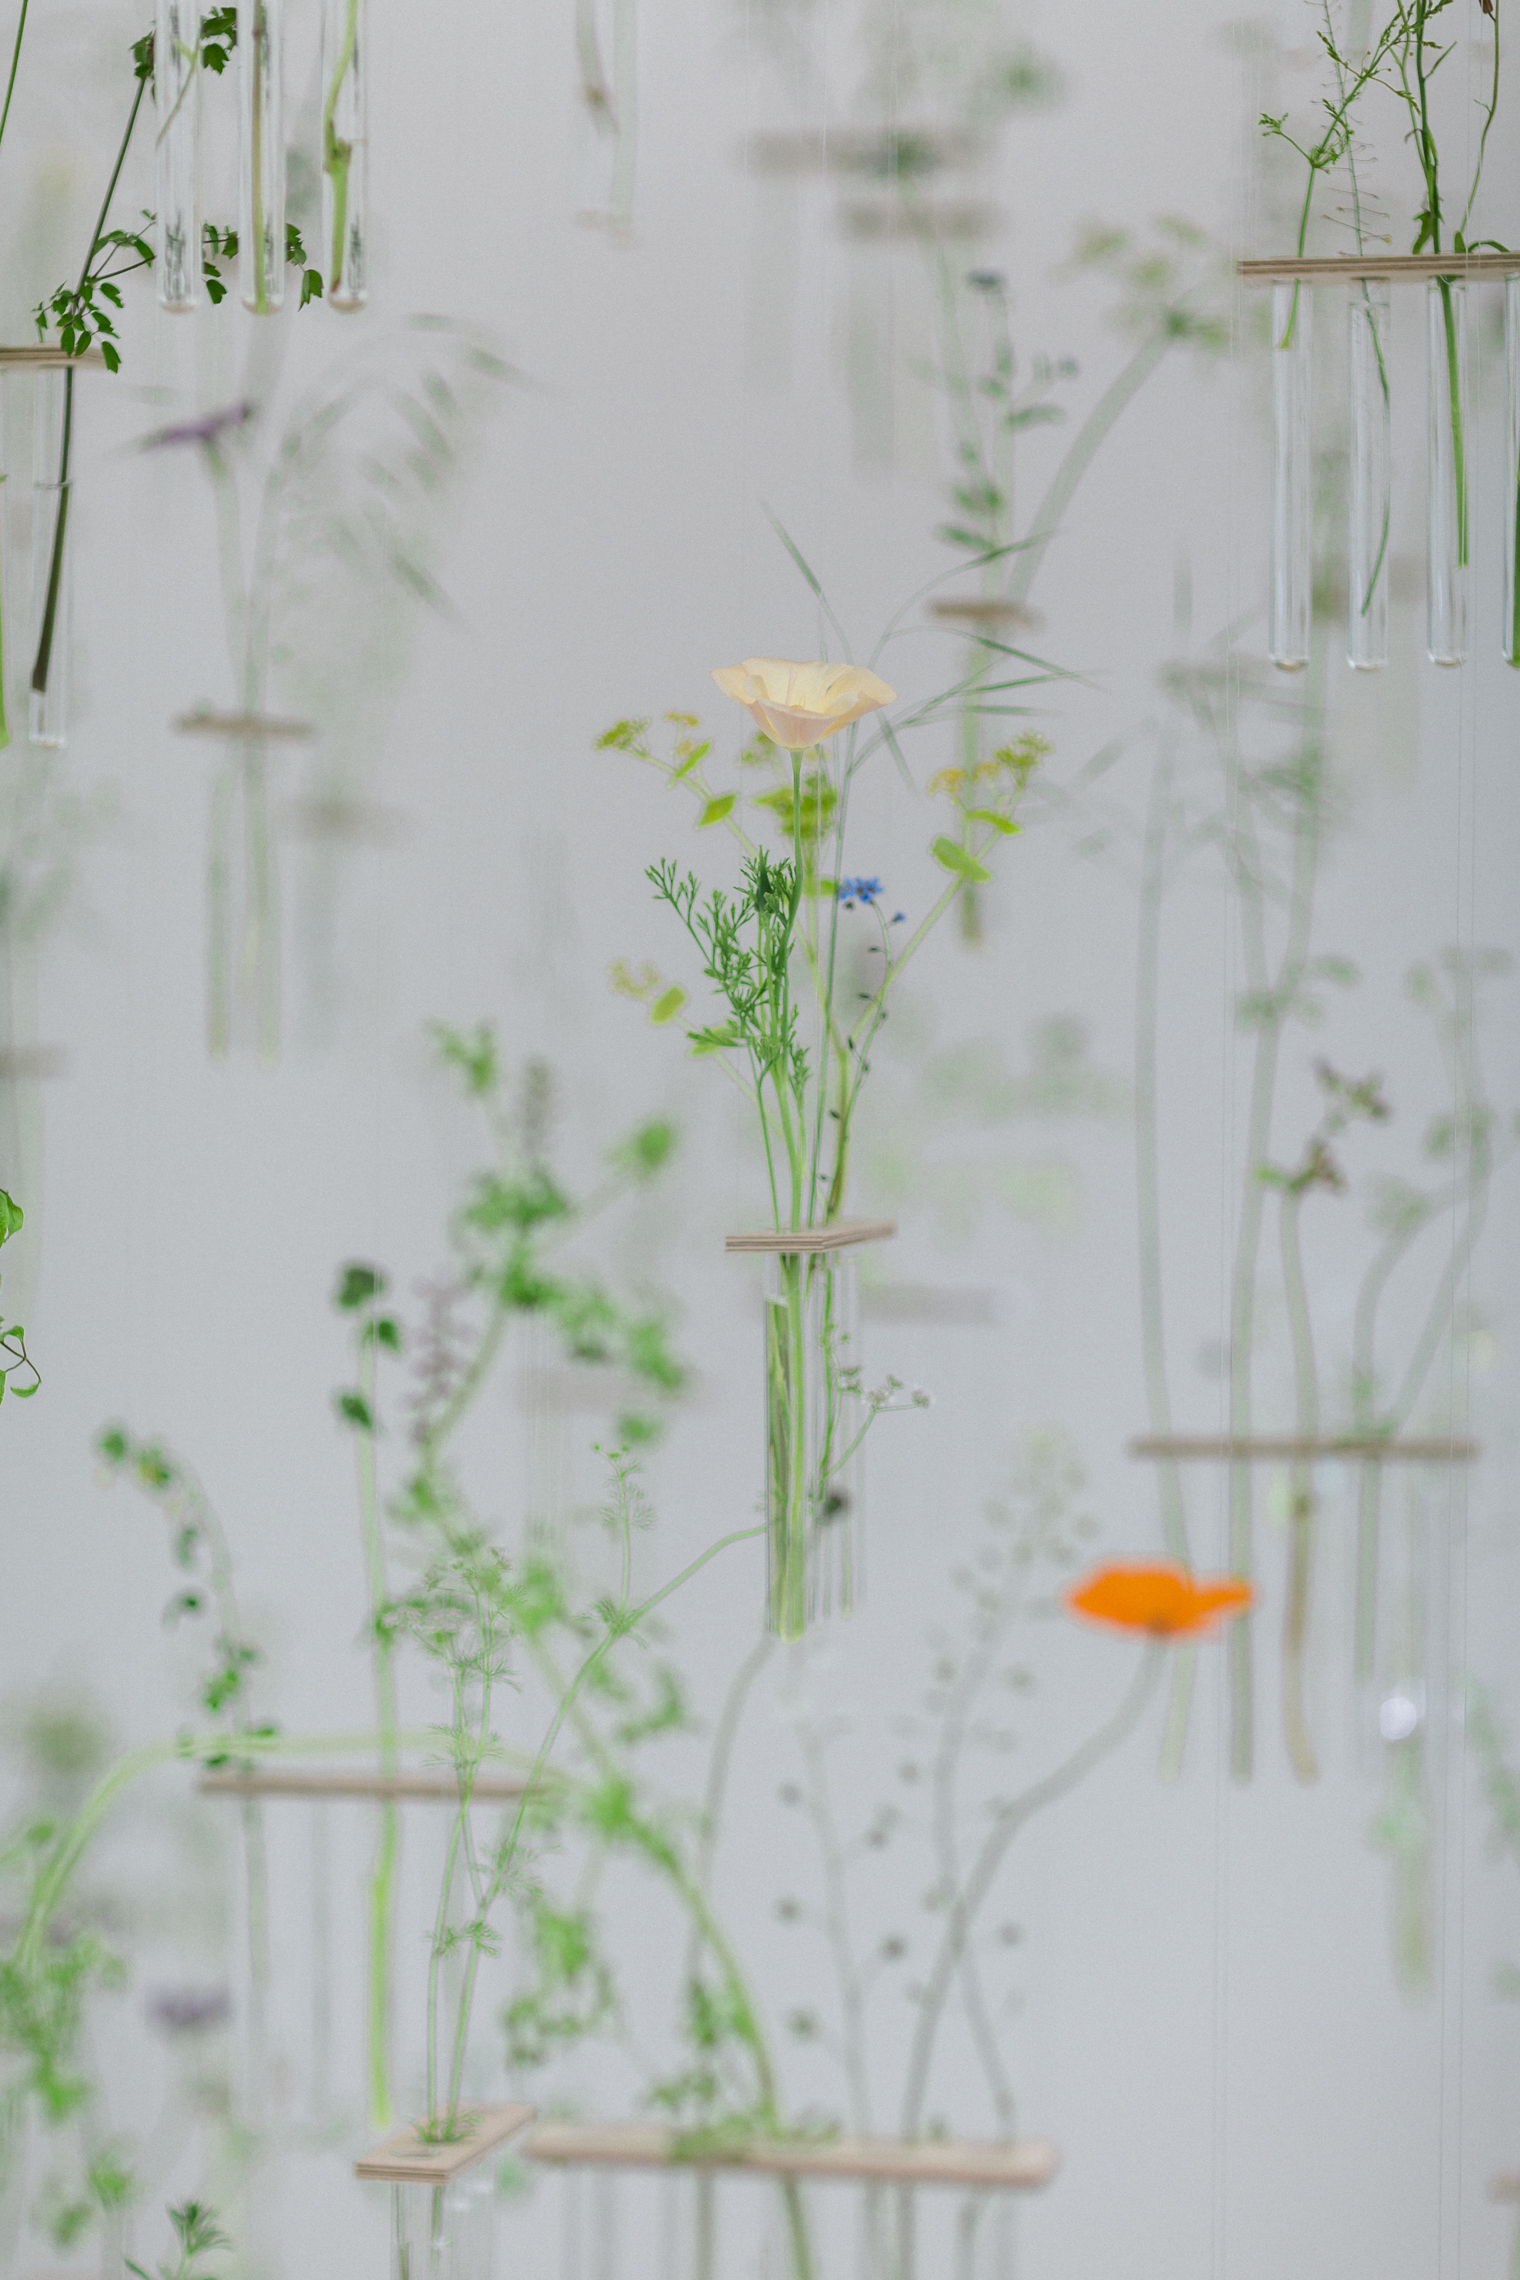 Come What May by Festoon at the RHS Chelsea Flower Show 2019